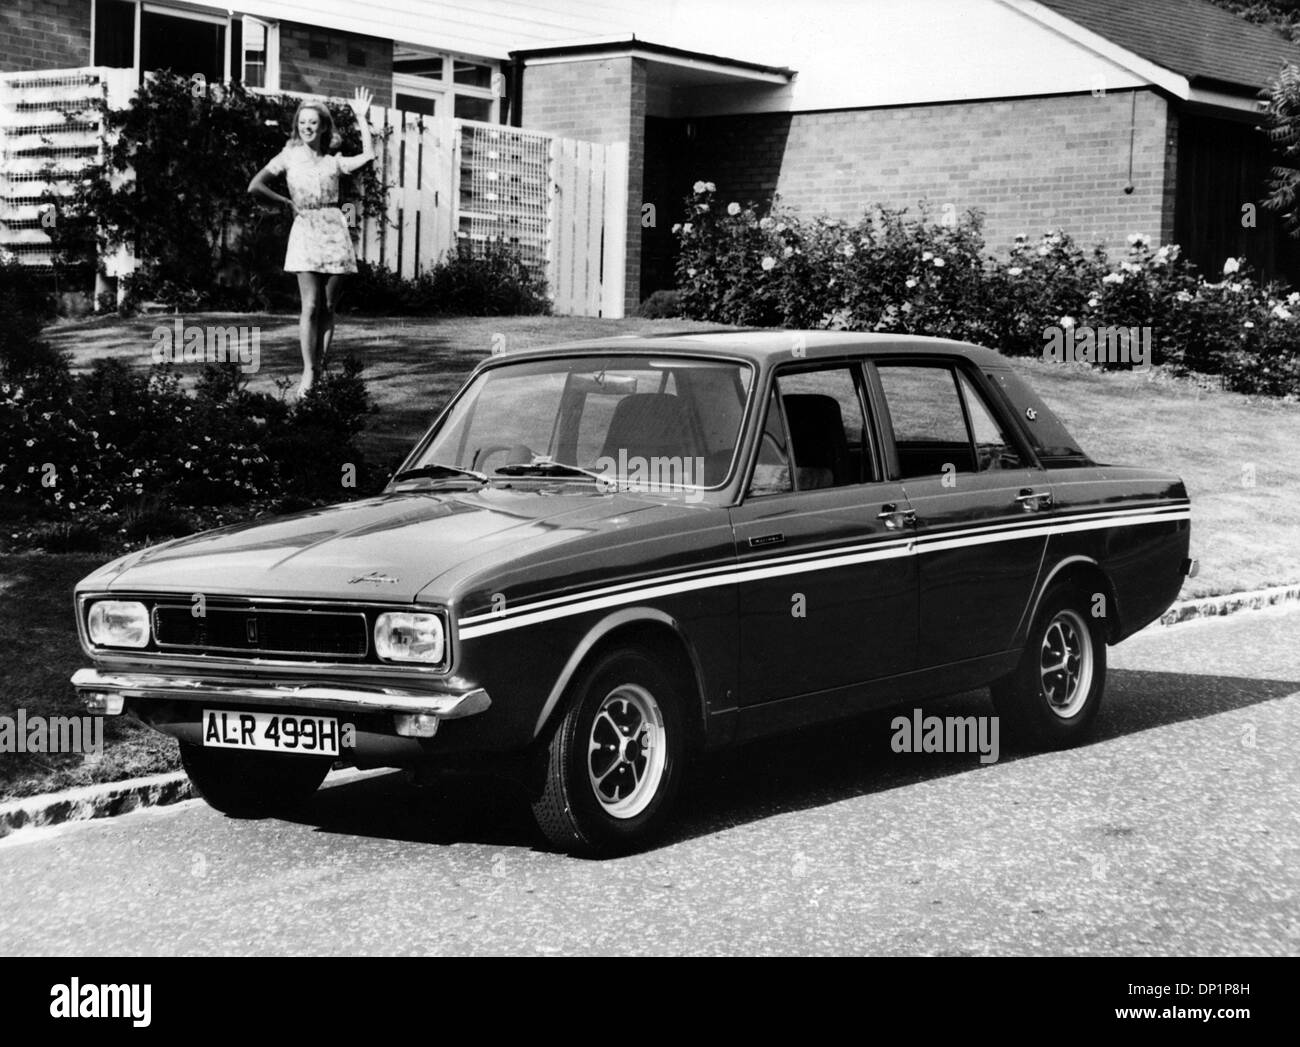 1969 Hillman Hunter GT - Stock Image